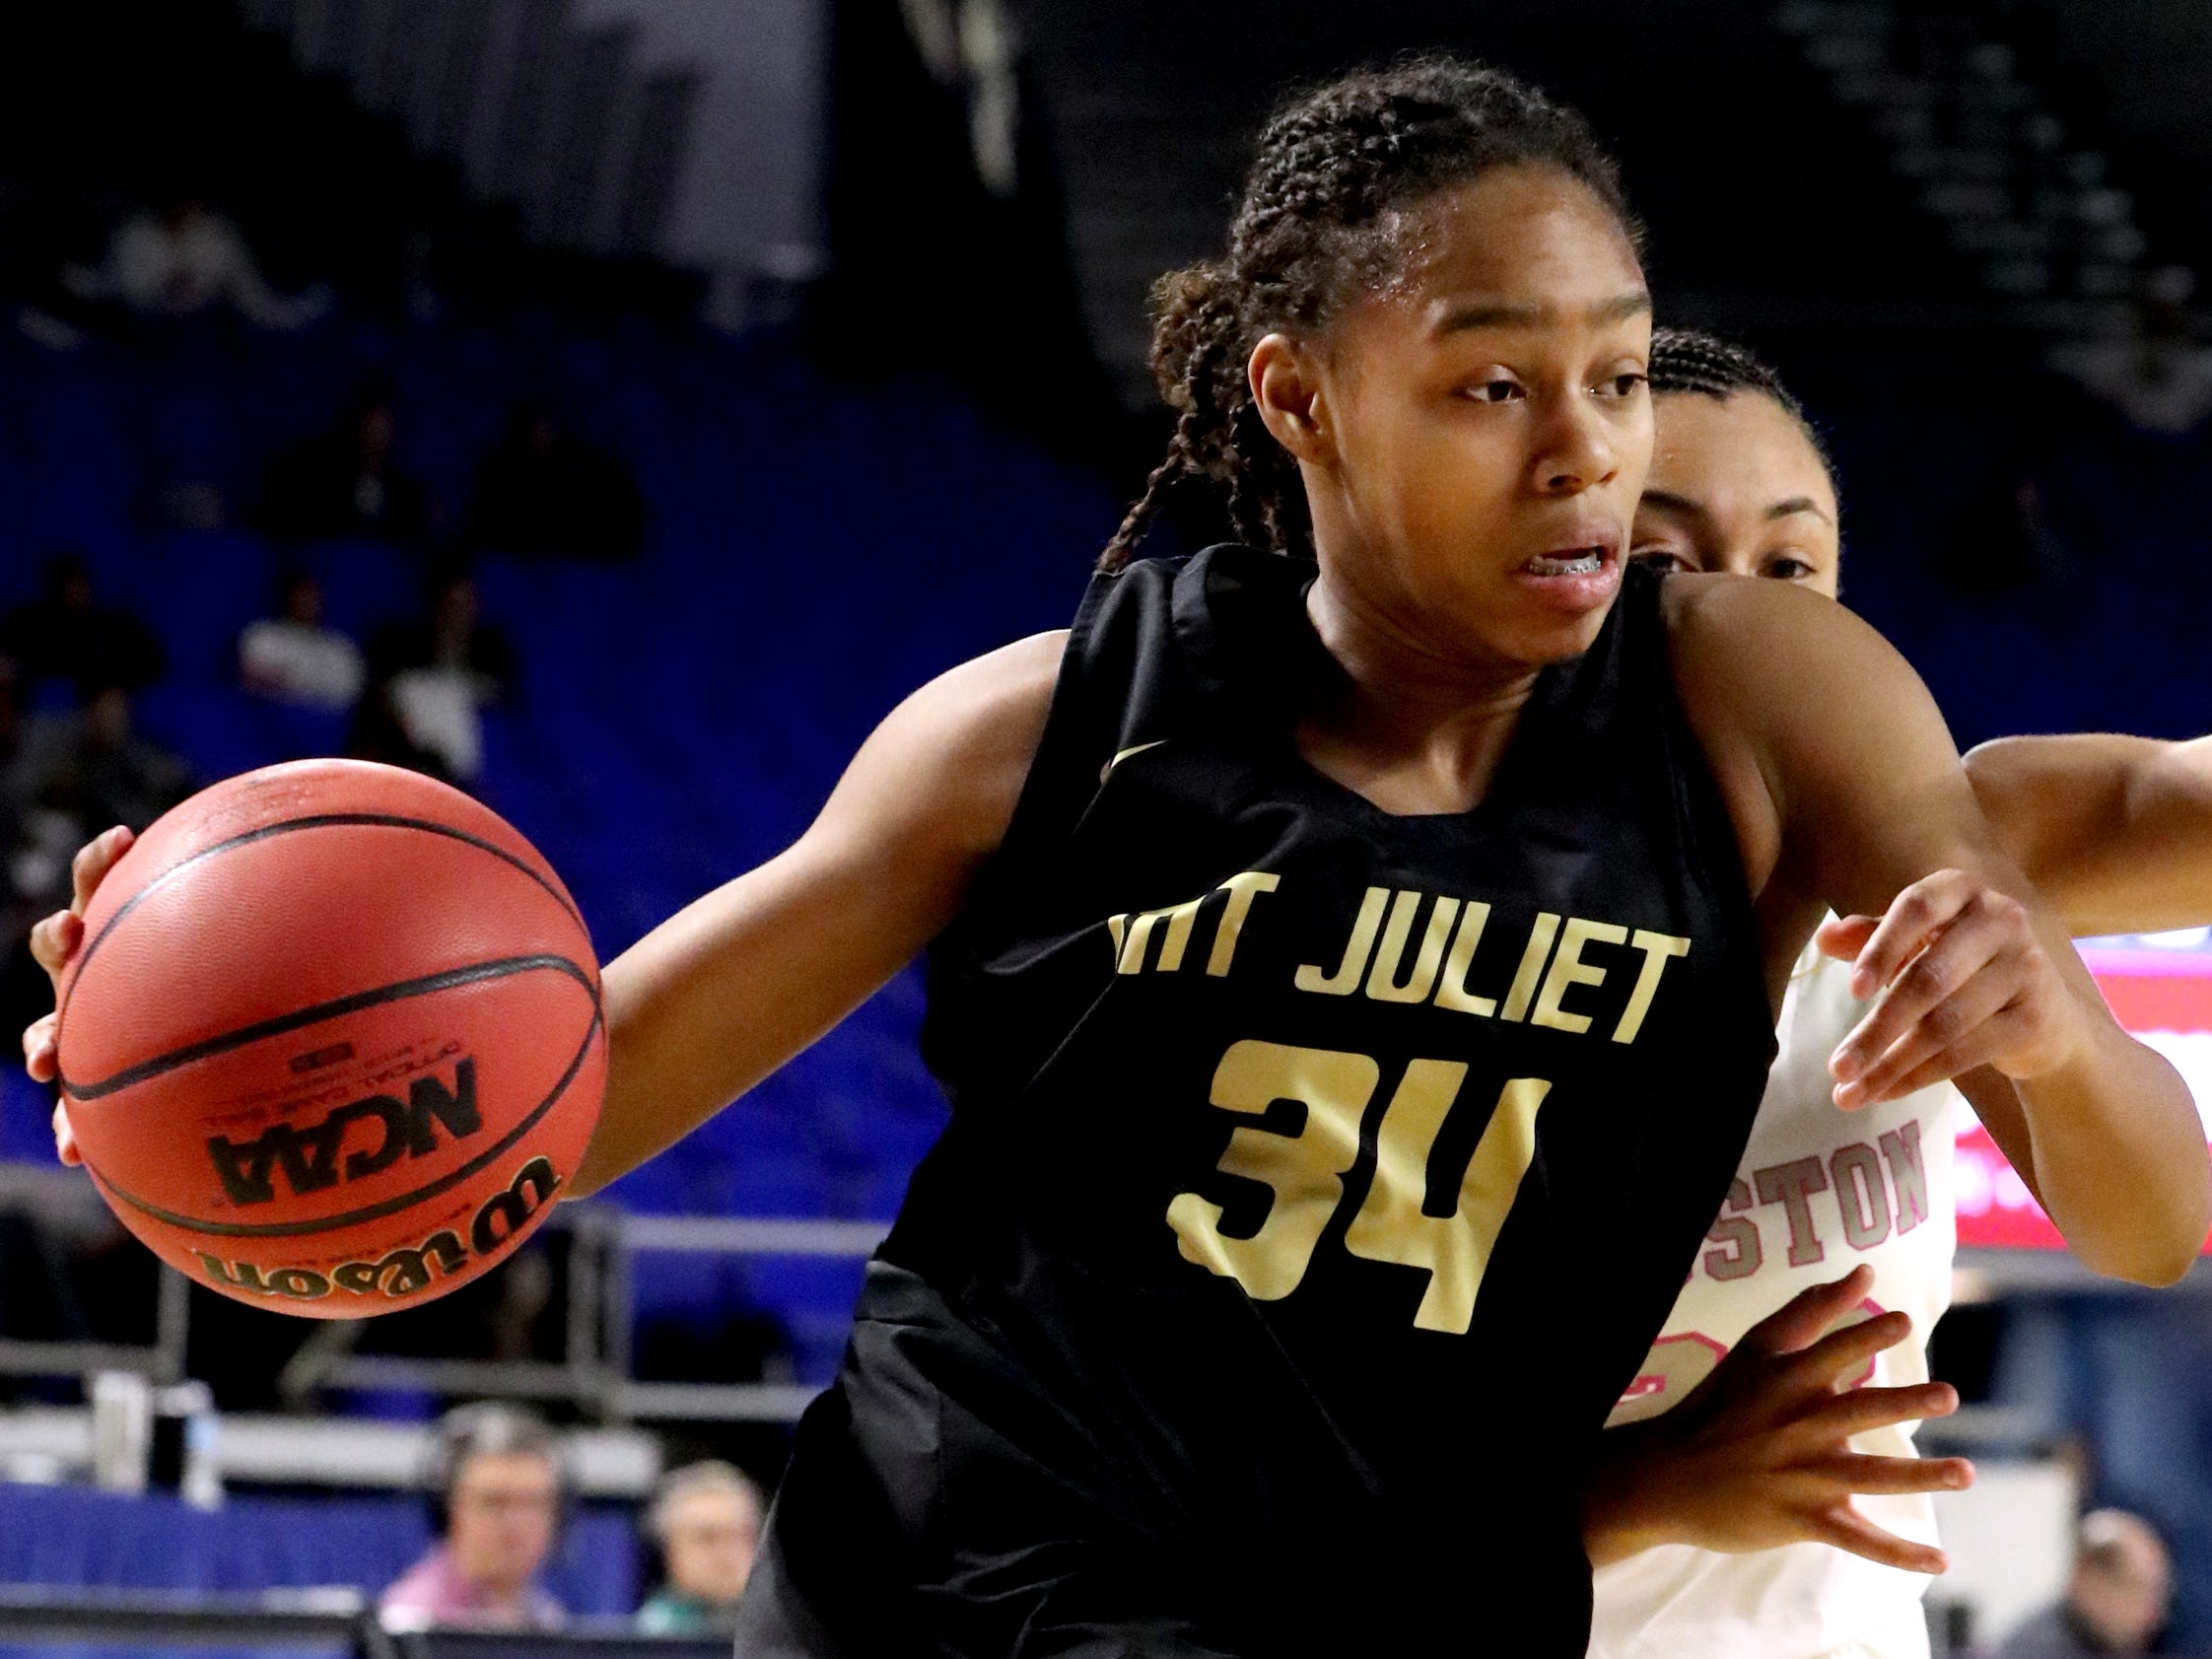 Mt. Juliet's Tondriannha Davis (34) drives to the basket around Houston's Madison Griggs (23) during the quarterfinal round of the TSSAA Div. 1 Class AAA Girls State Tournament, on Wednesday, March 6, 2019, at Murphy Center in Murfreesboro, Tenn.